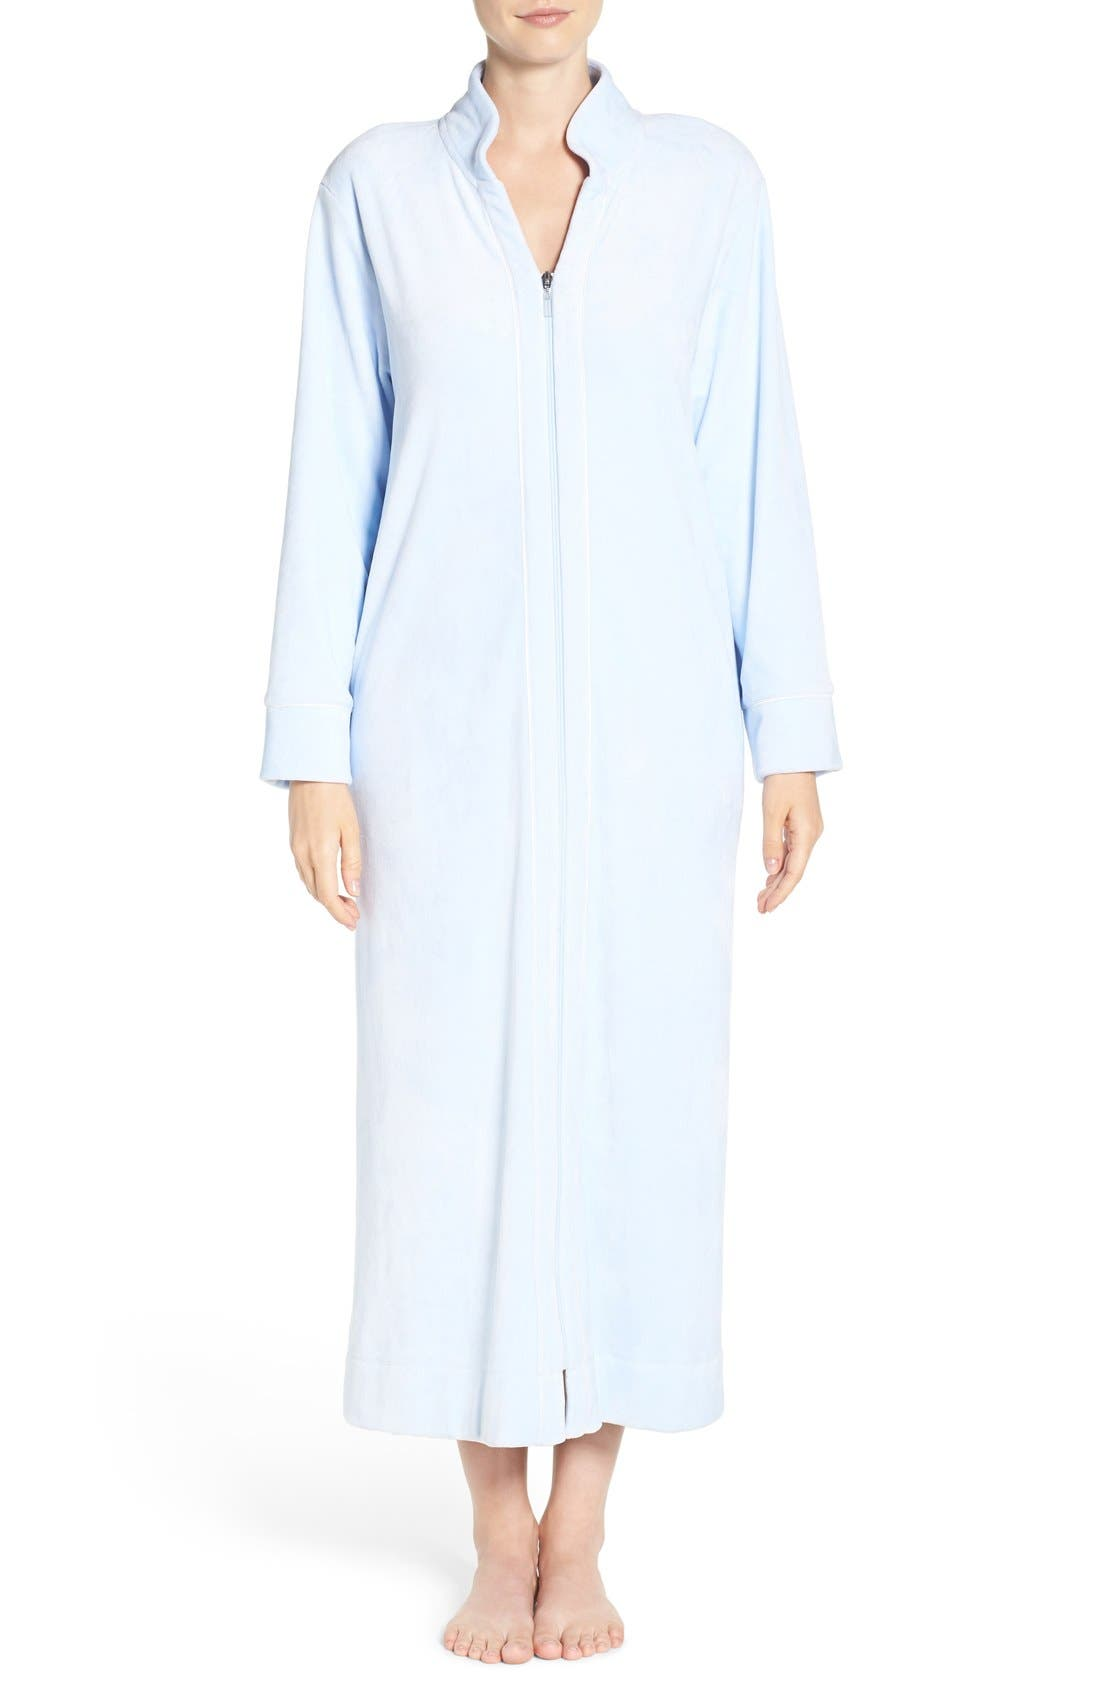 Alternate Image 1 Selected - Carole Hochman Front Zip Velour Robe